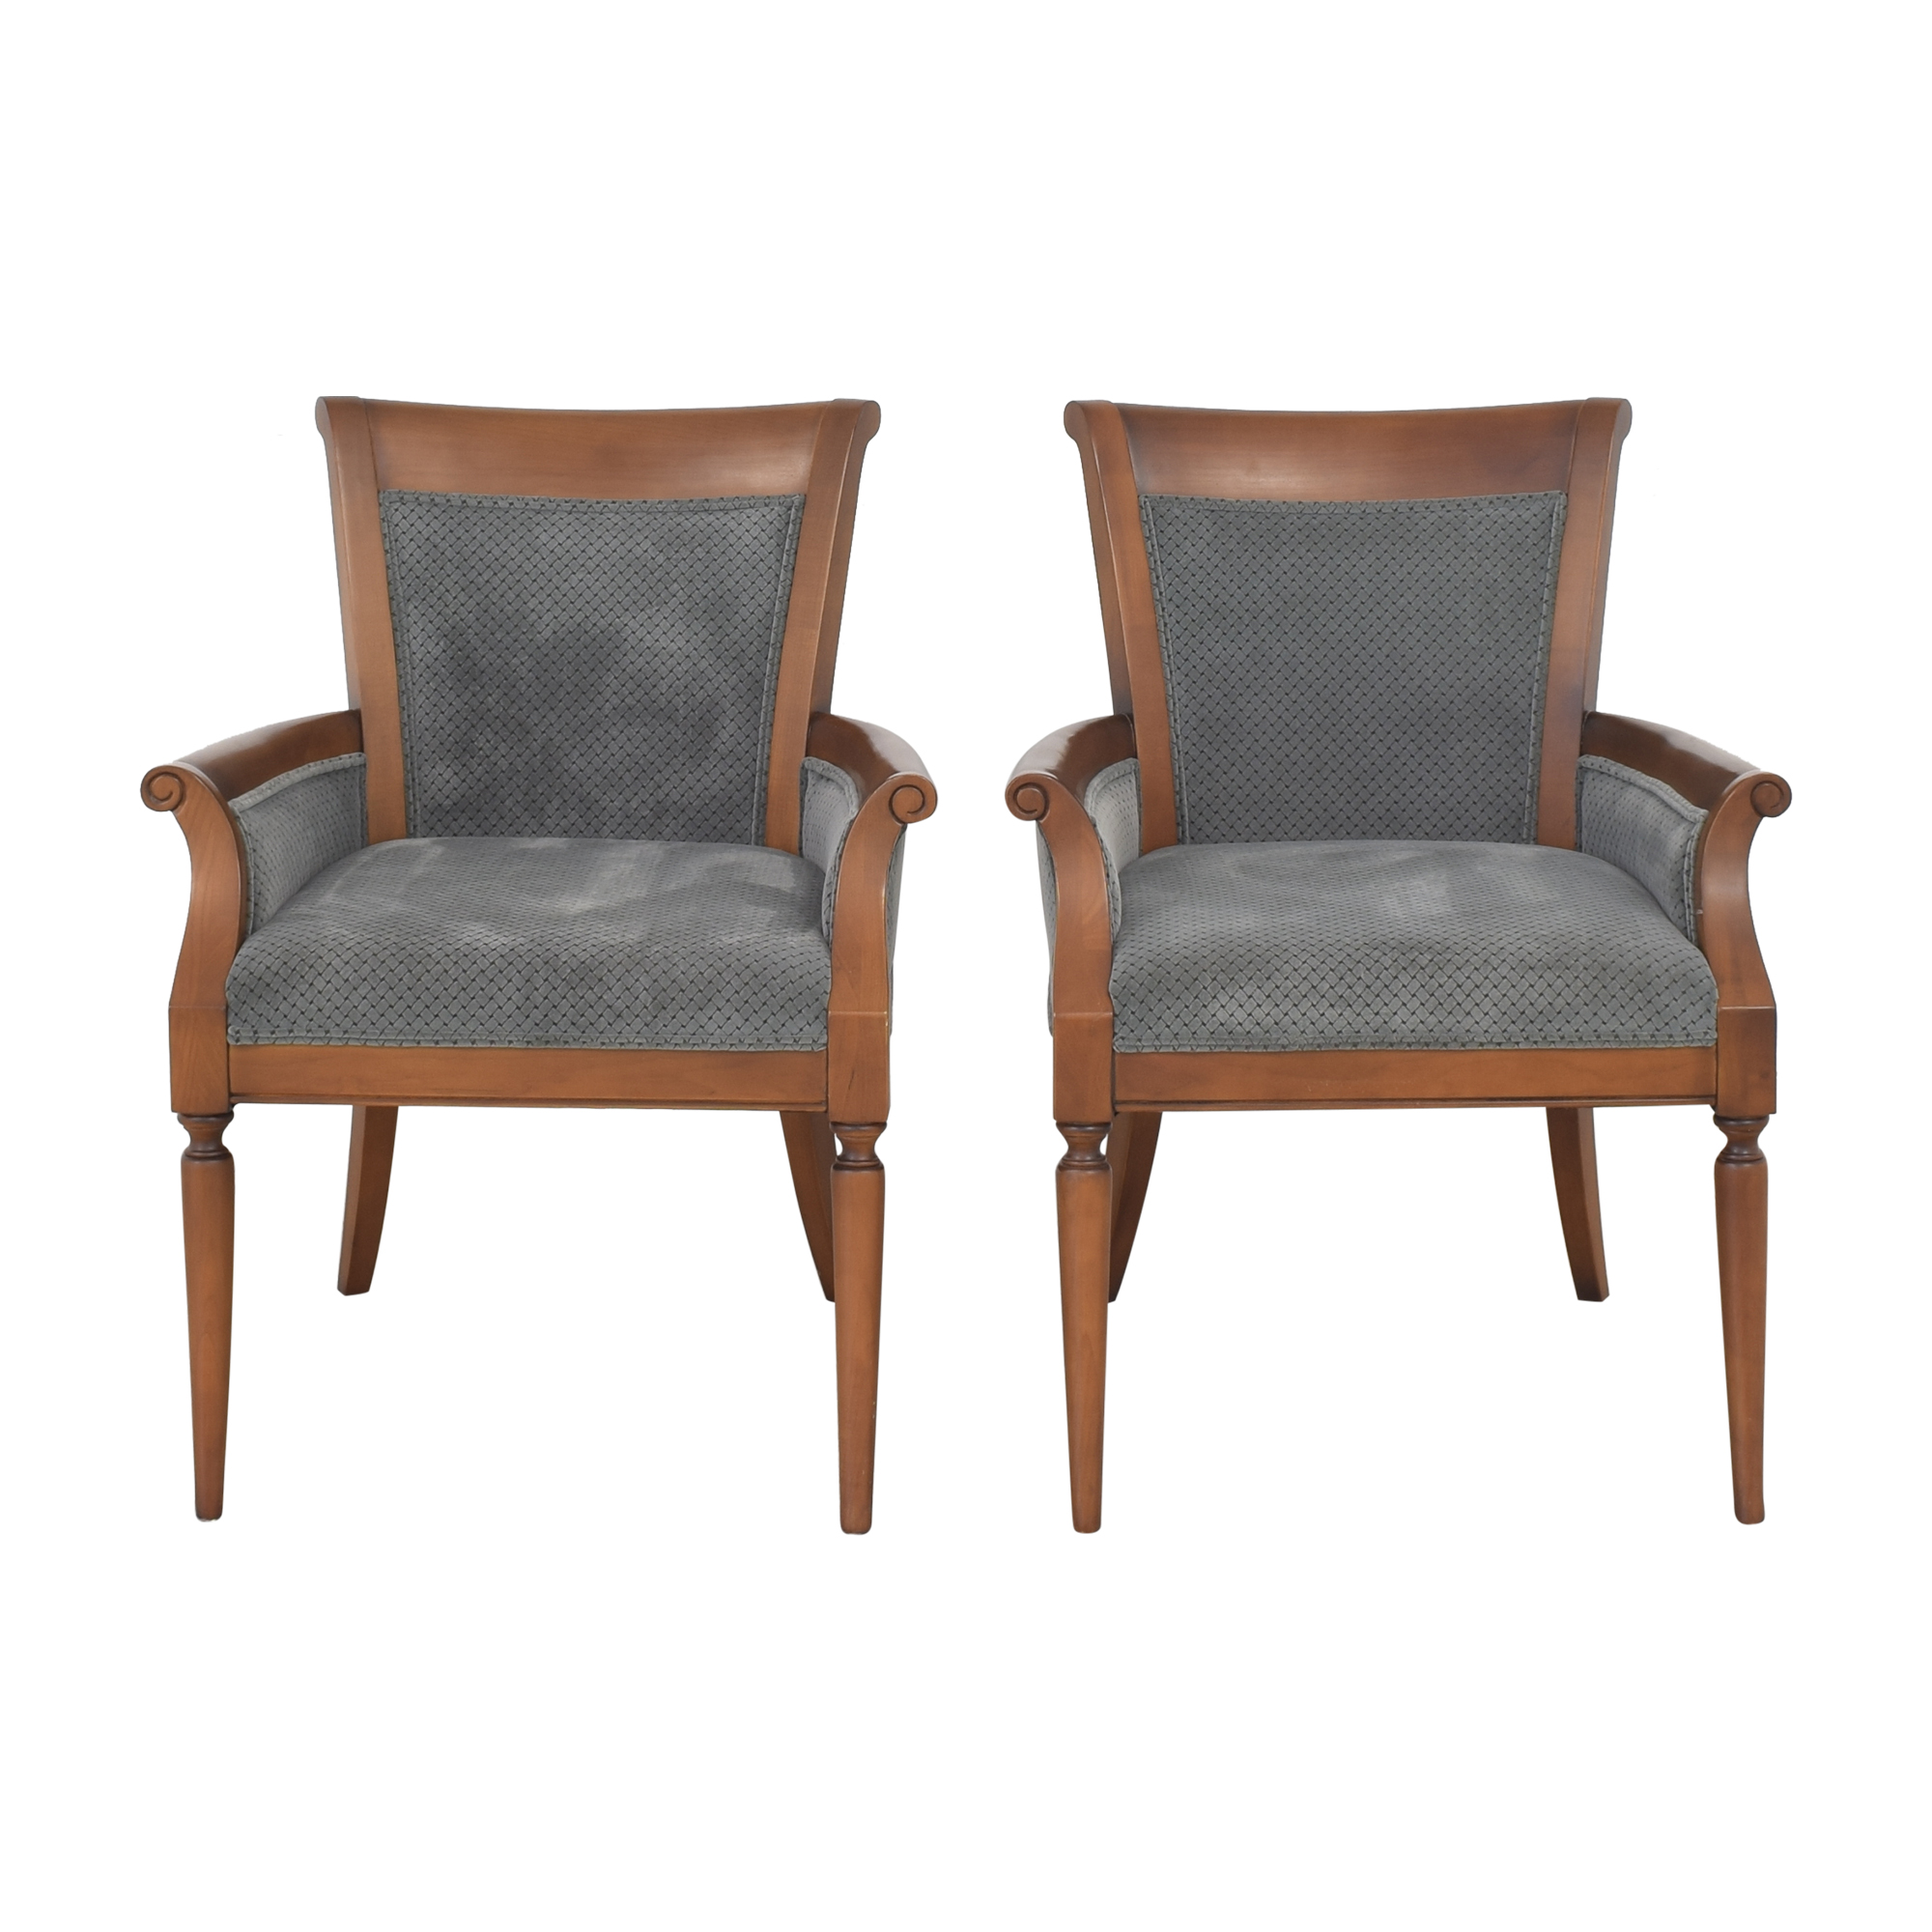 Hekman Furniture Hekman Aberdeen Accent Chairs coupon